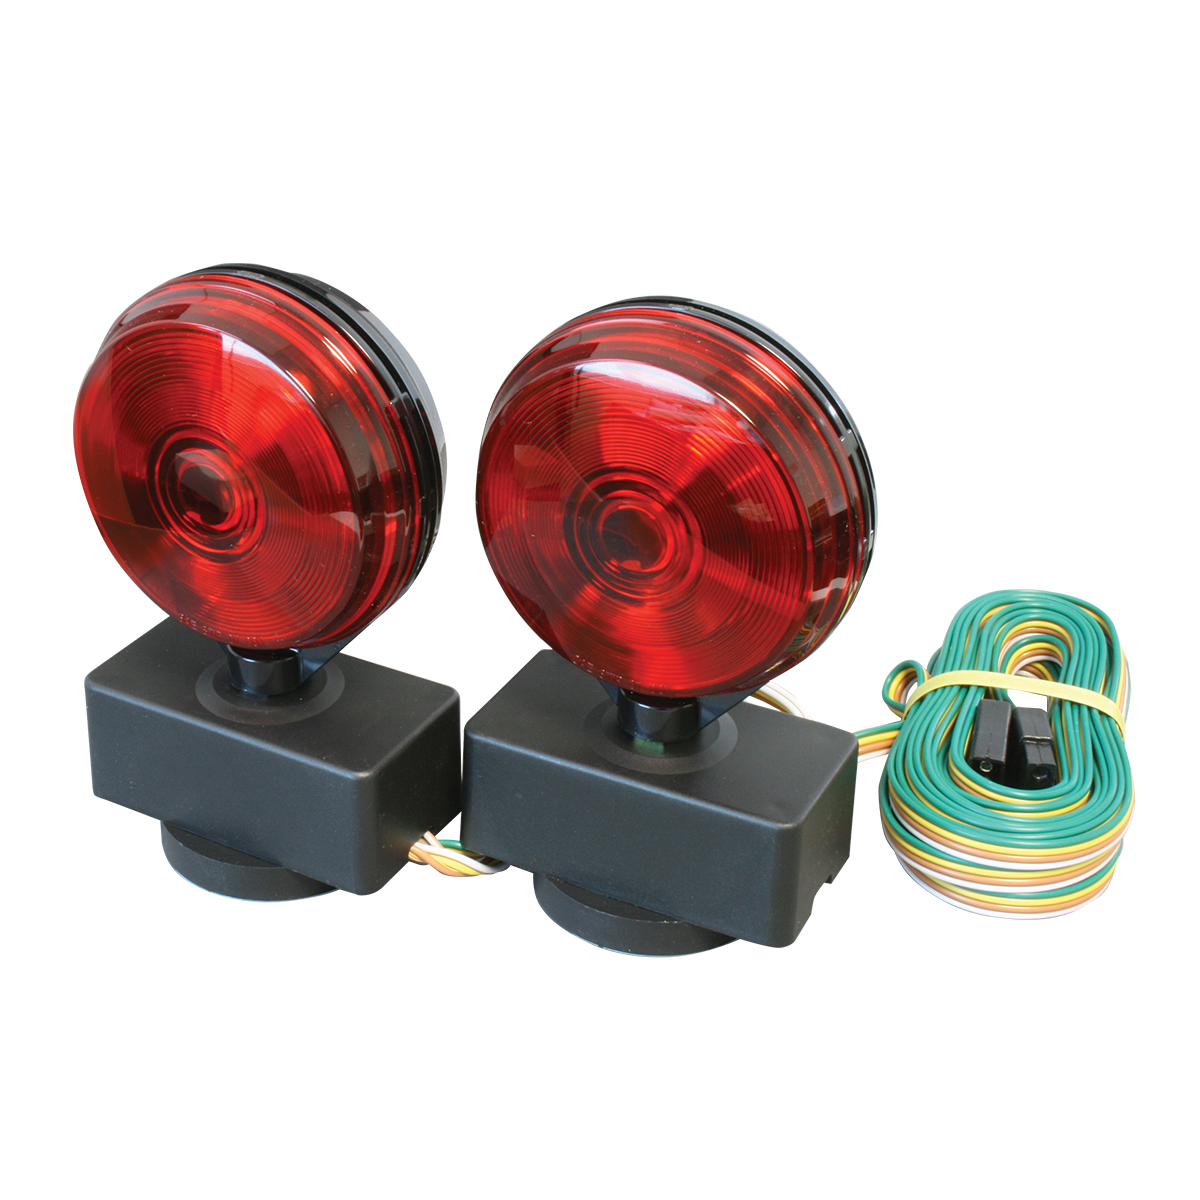 "4"" Towing Light Kit with Magnetic Base"